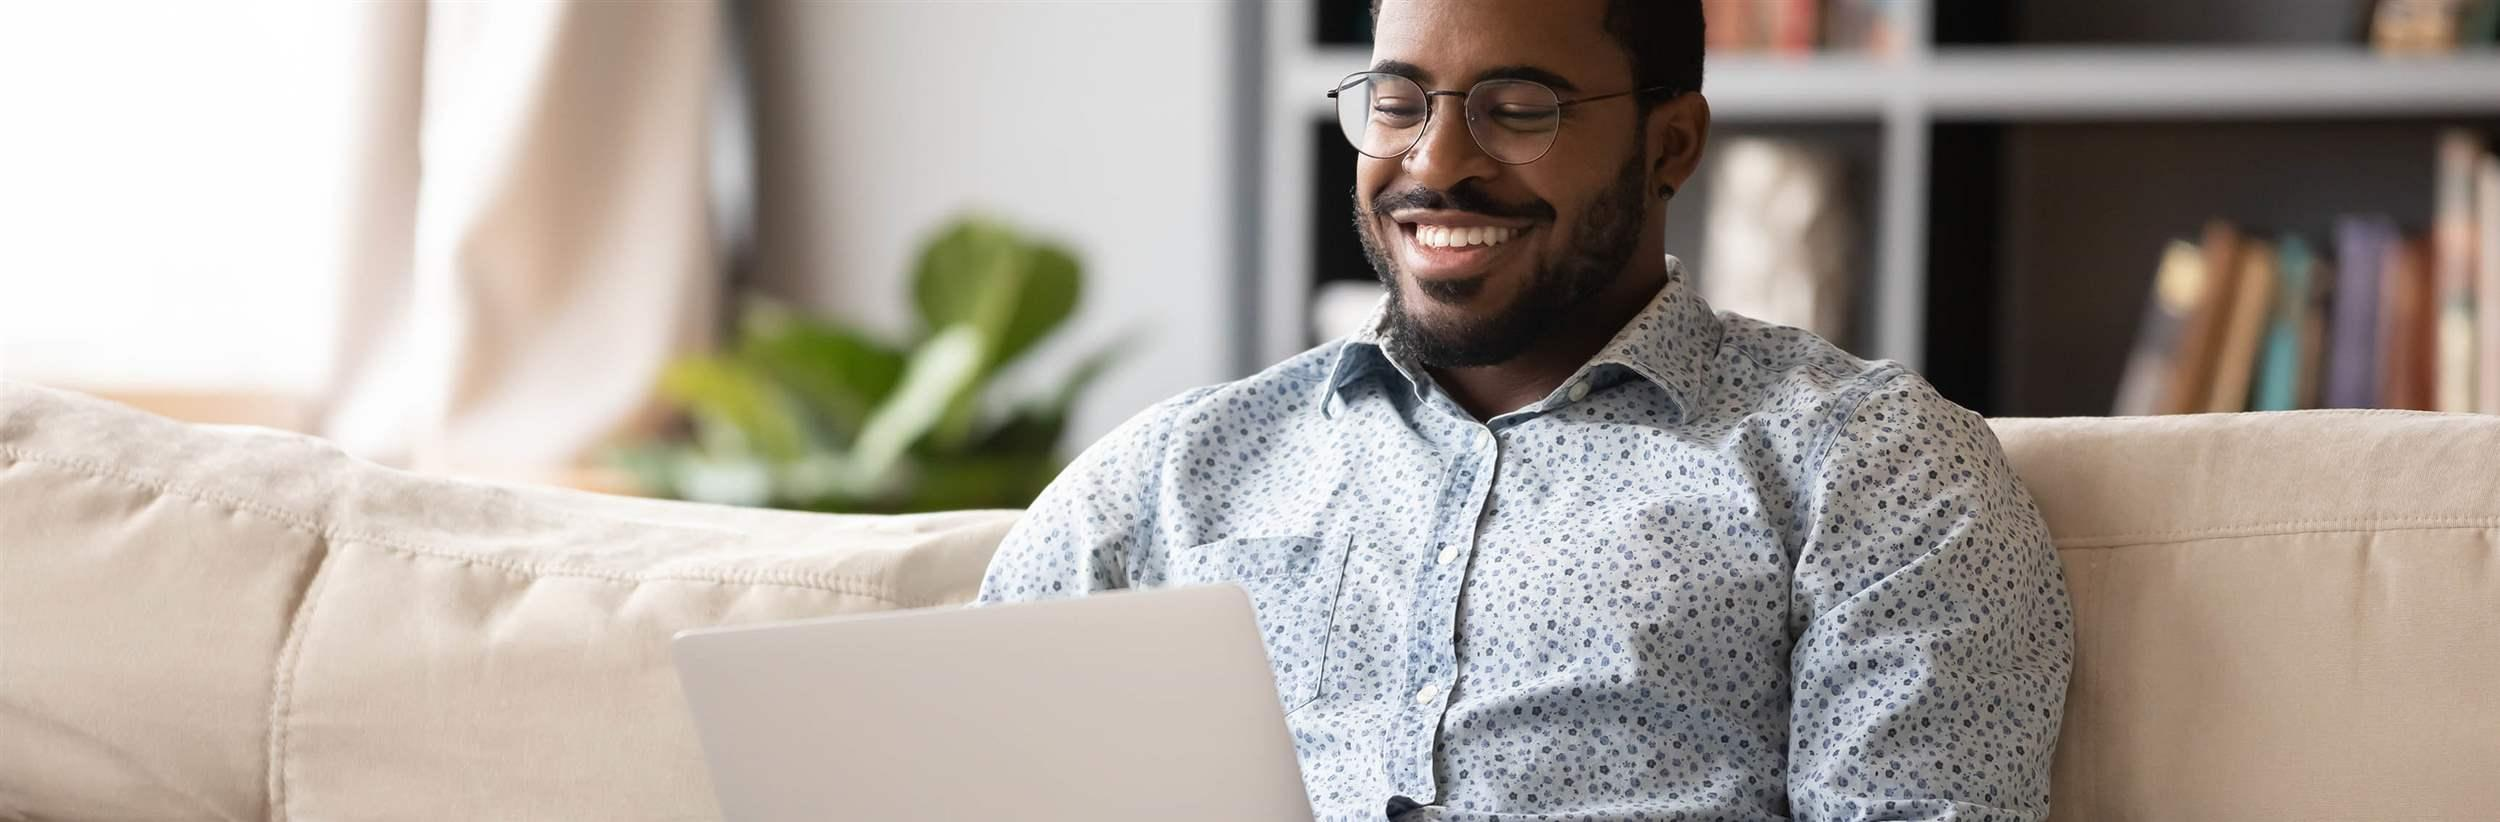 Smiling young man in eyewear relaxing on couch, looking at laptop screen.